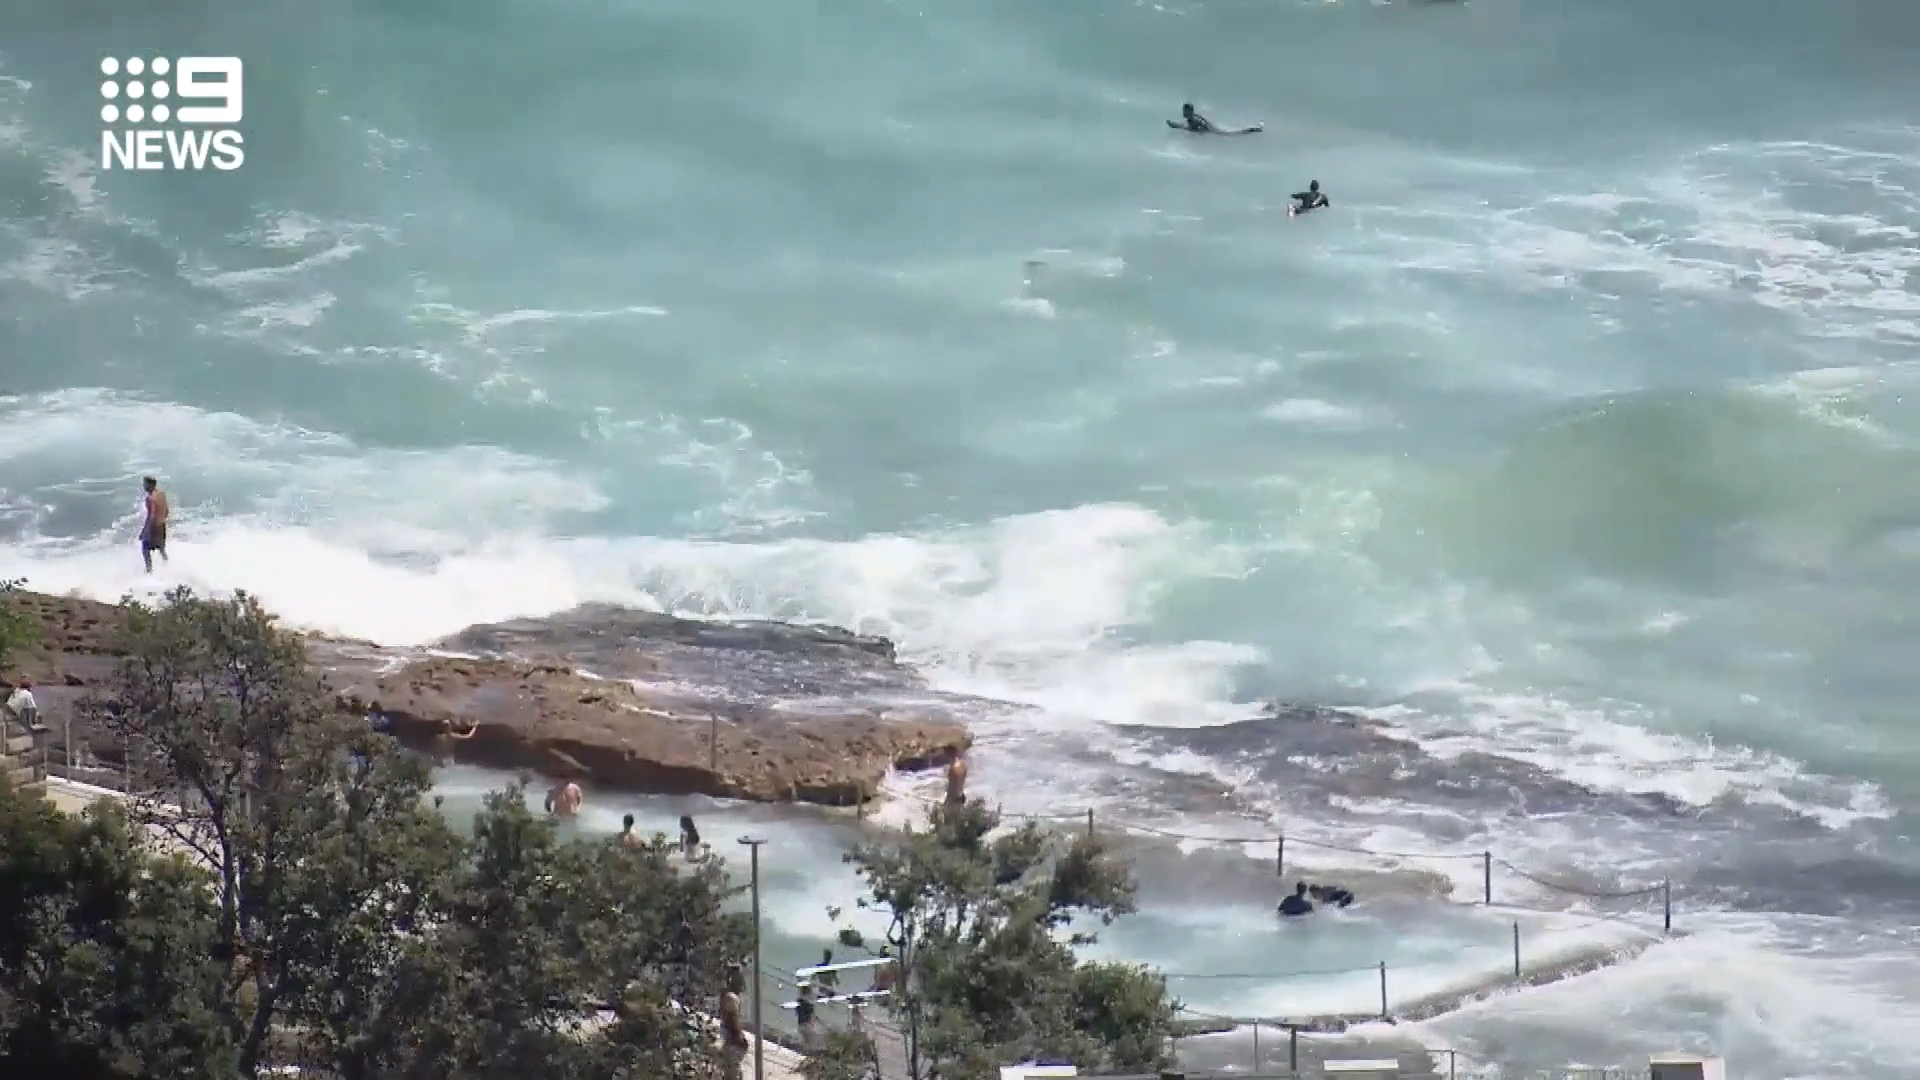 Heavy surf spotted off Sydney beaches